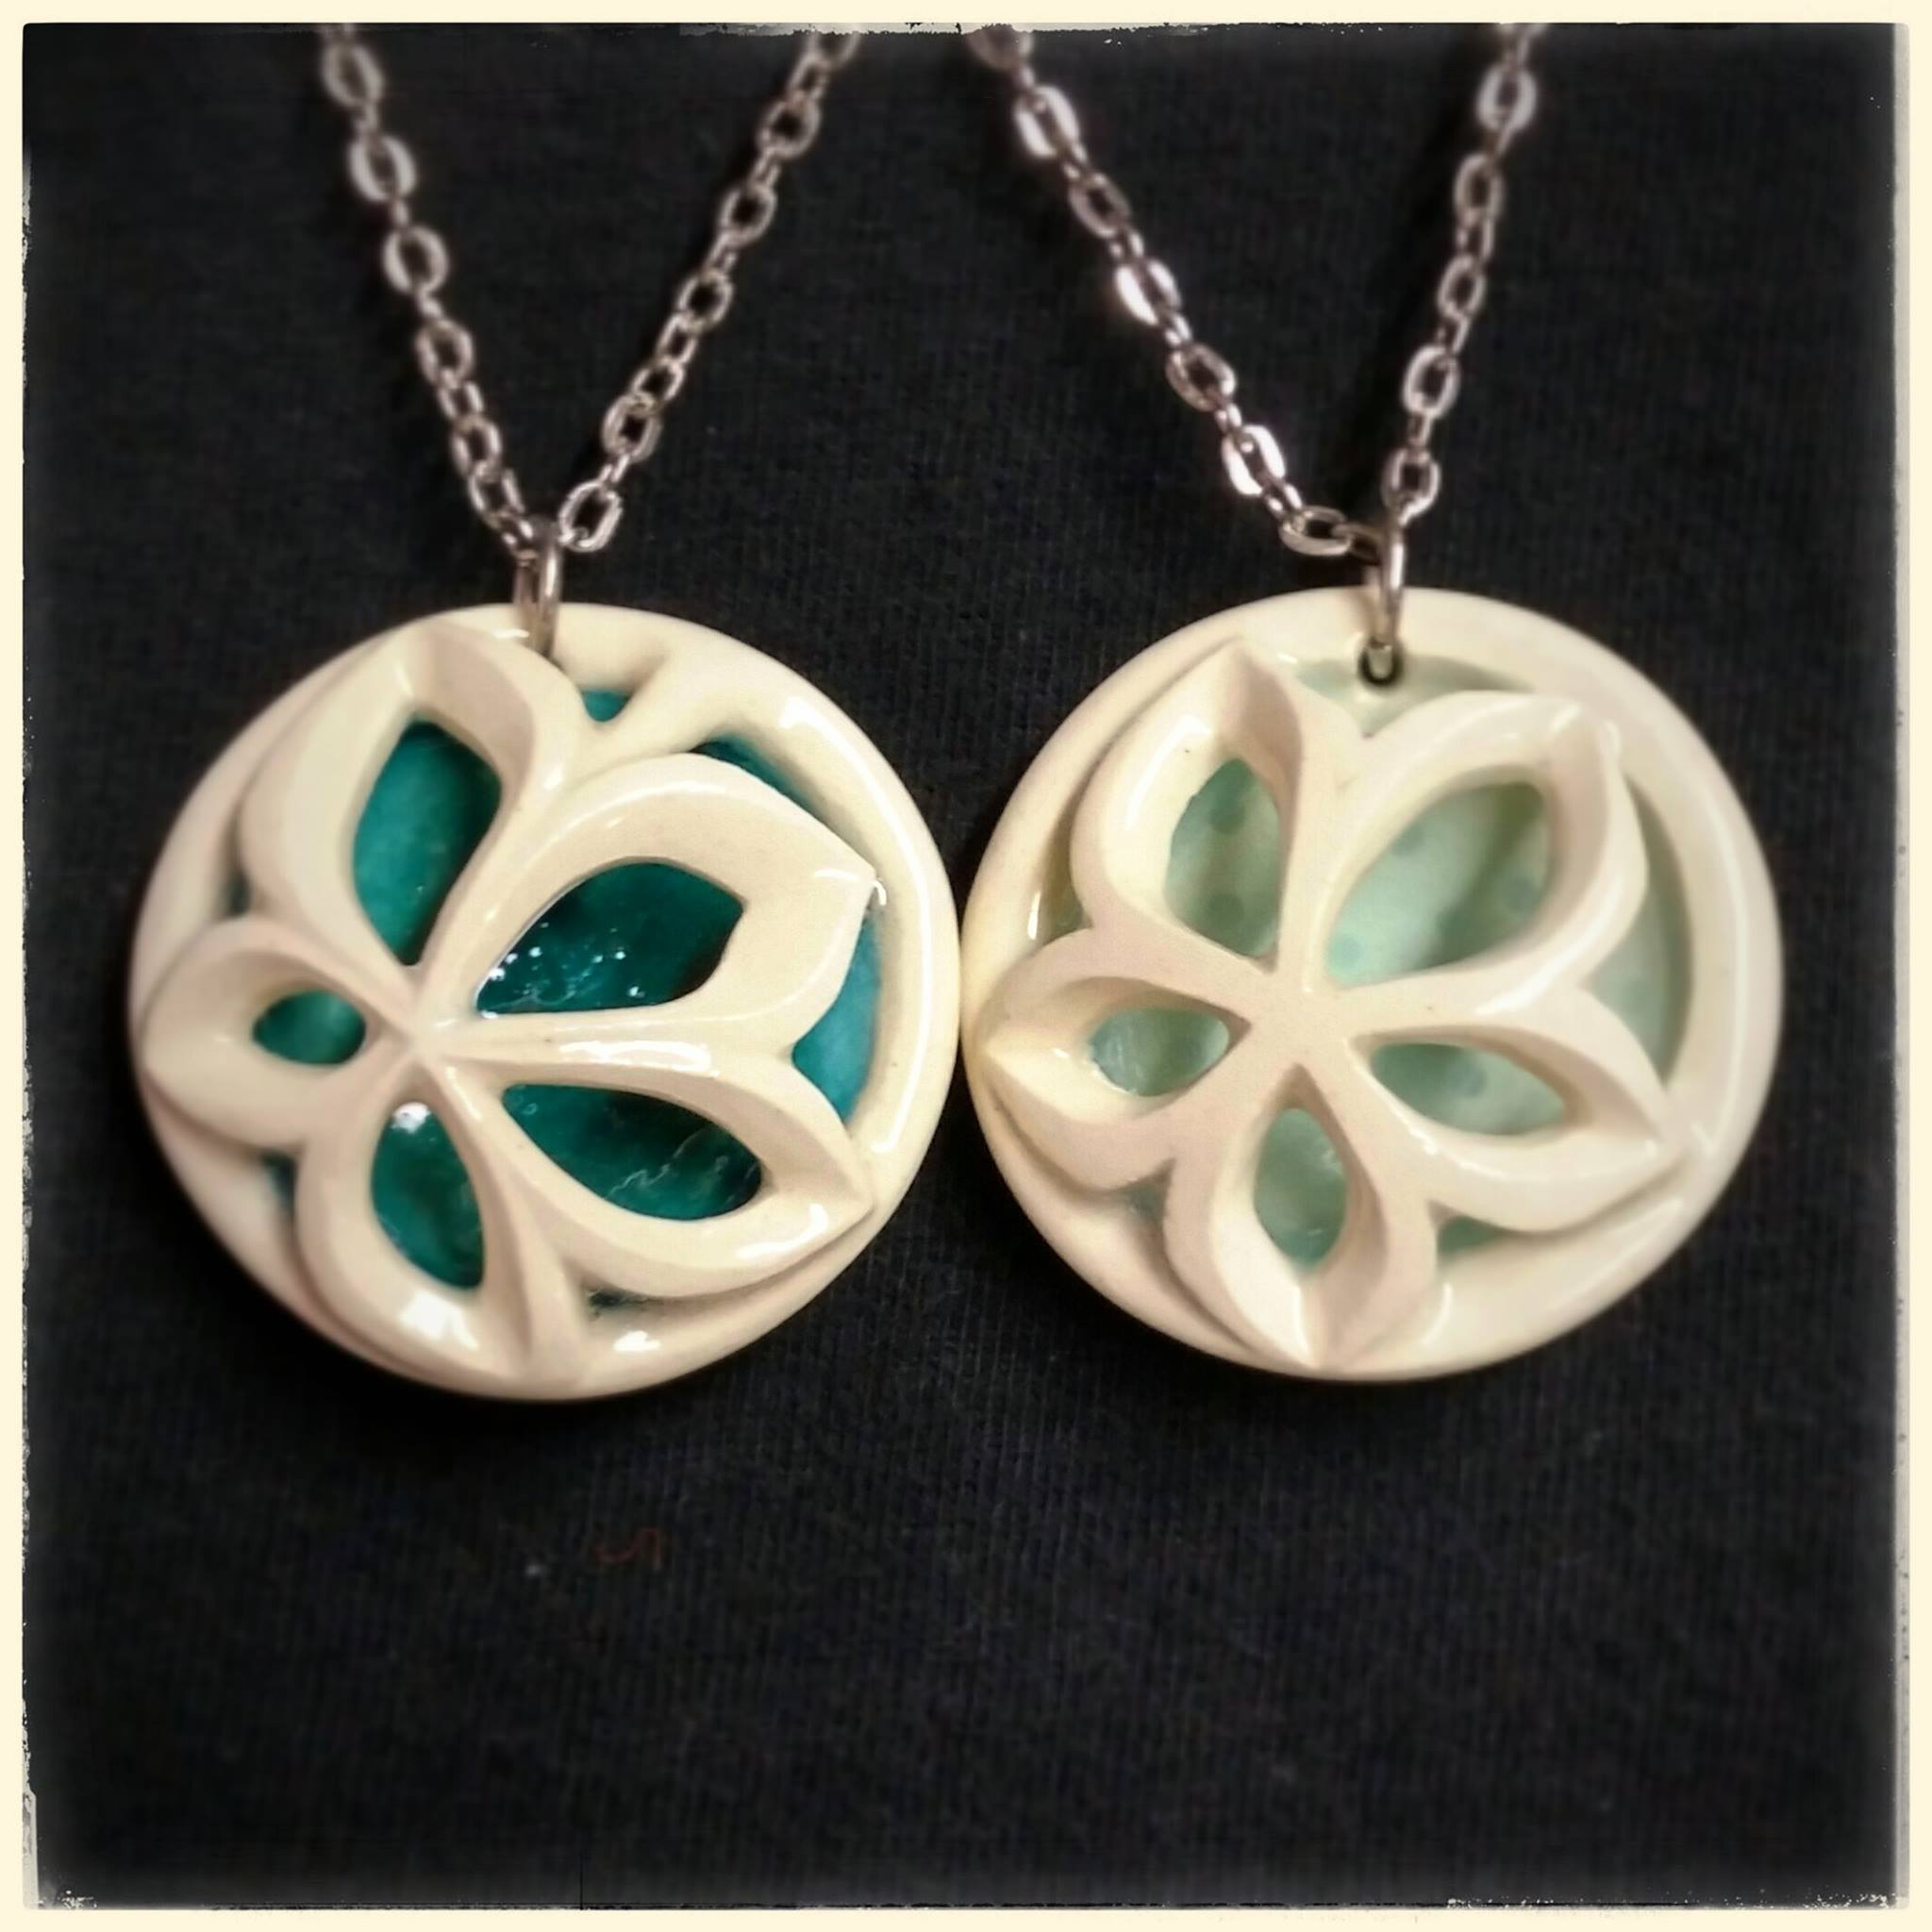 Joy's artwork: pottery necklaces, used as inspiration for her unique solitaire engagement ring by Takayas